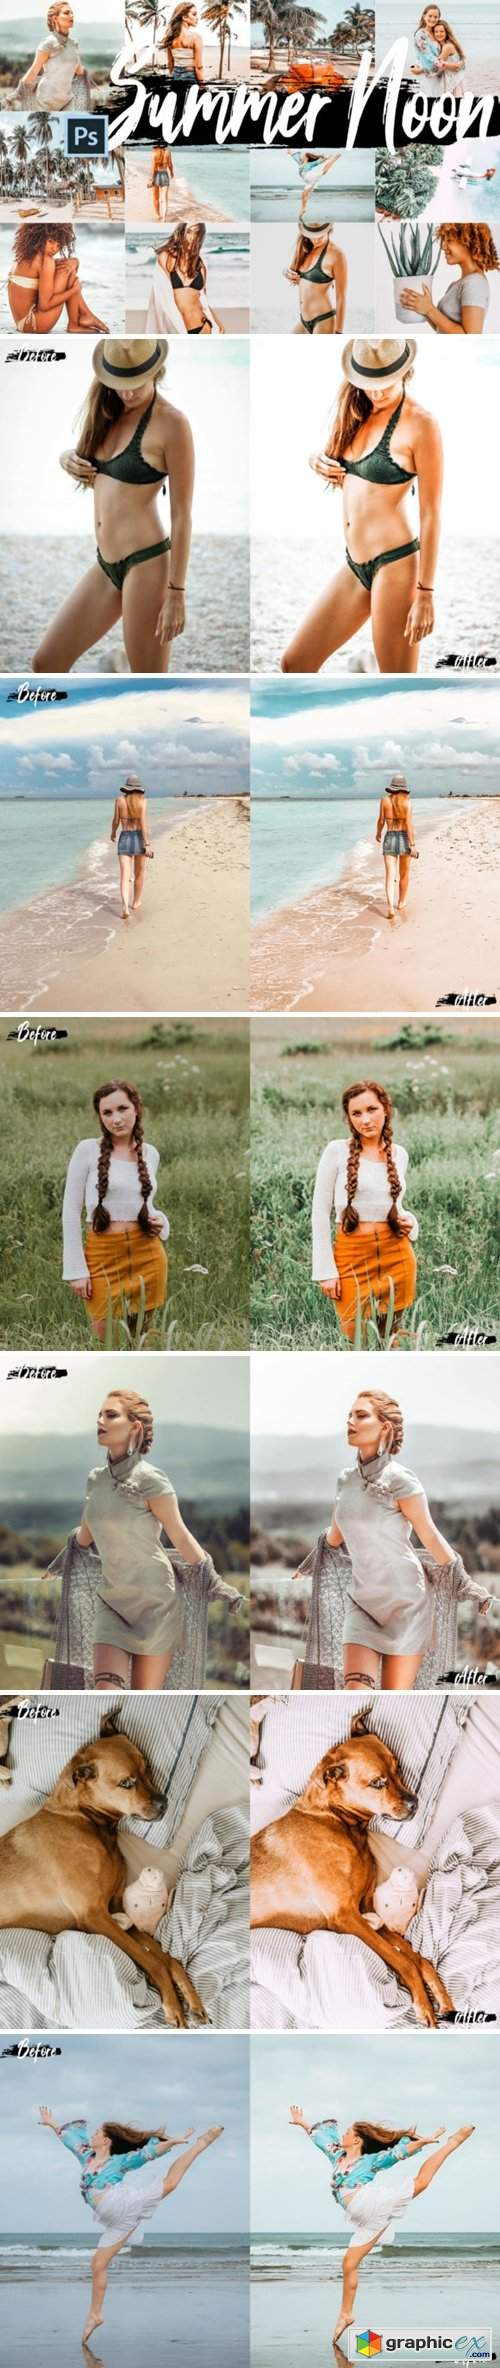 5 Summer Noon Photoshop Actions